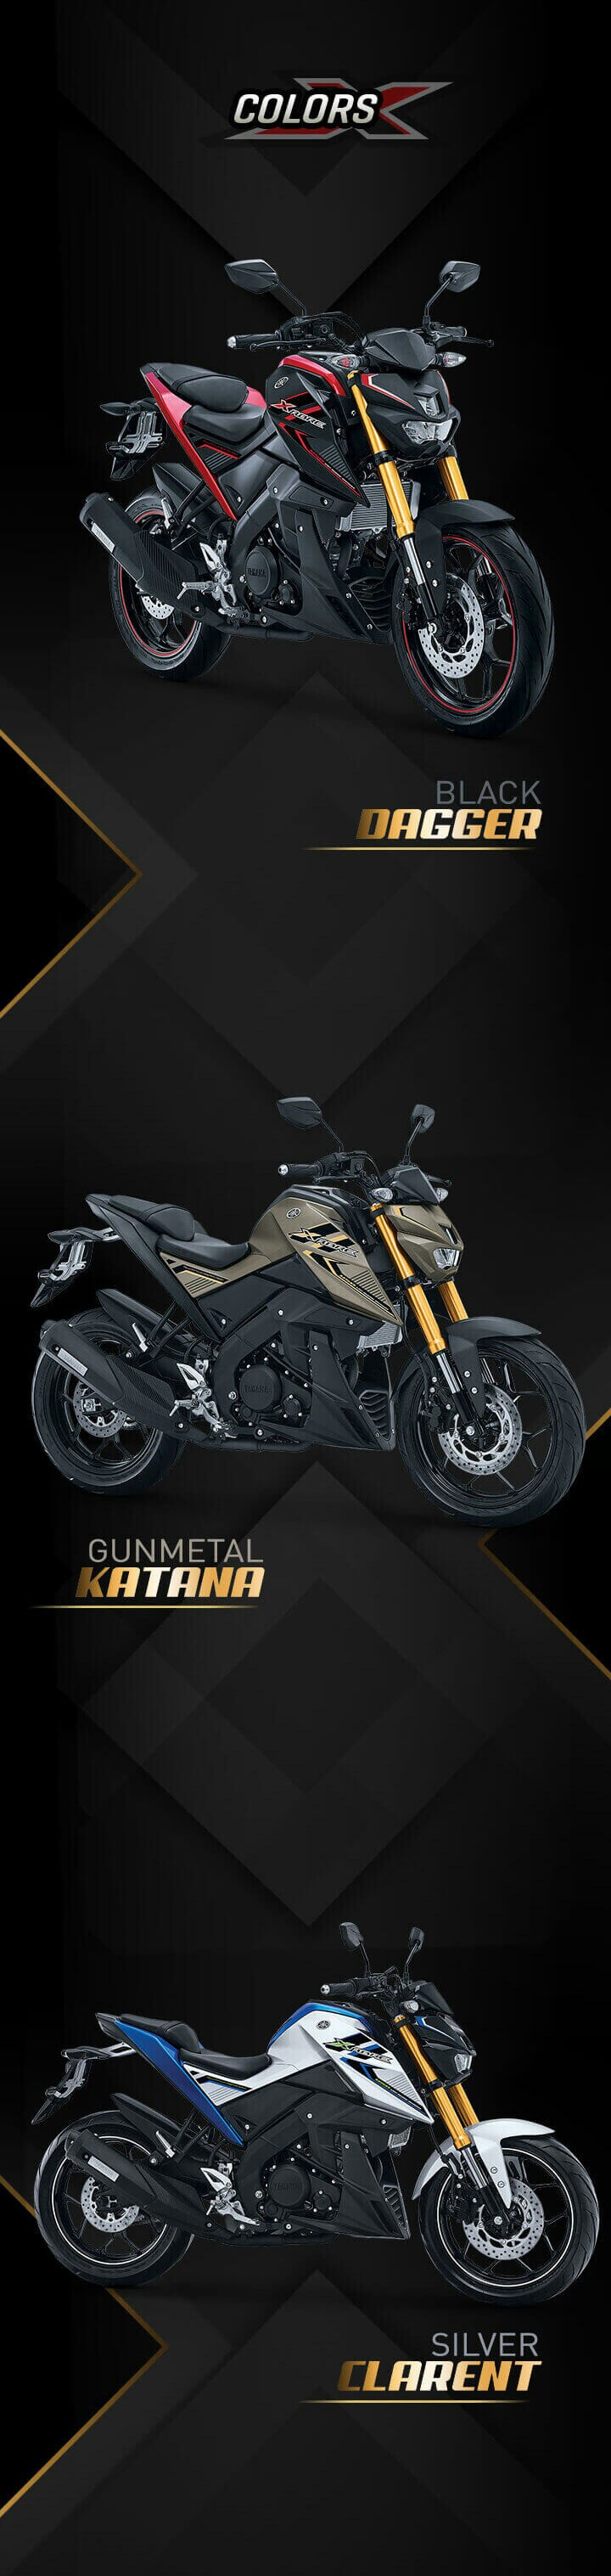 Xabre 150 Yamaha Indonesia 150cc Naked Bike